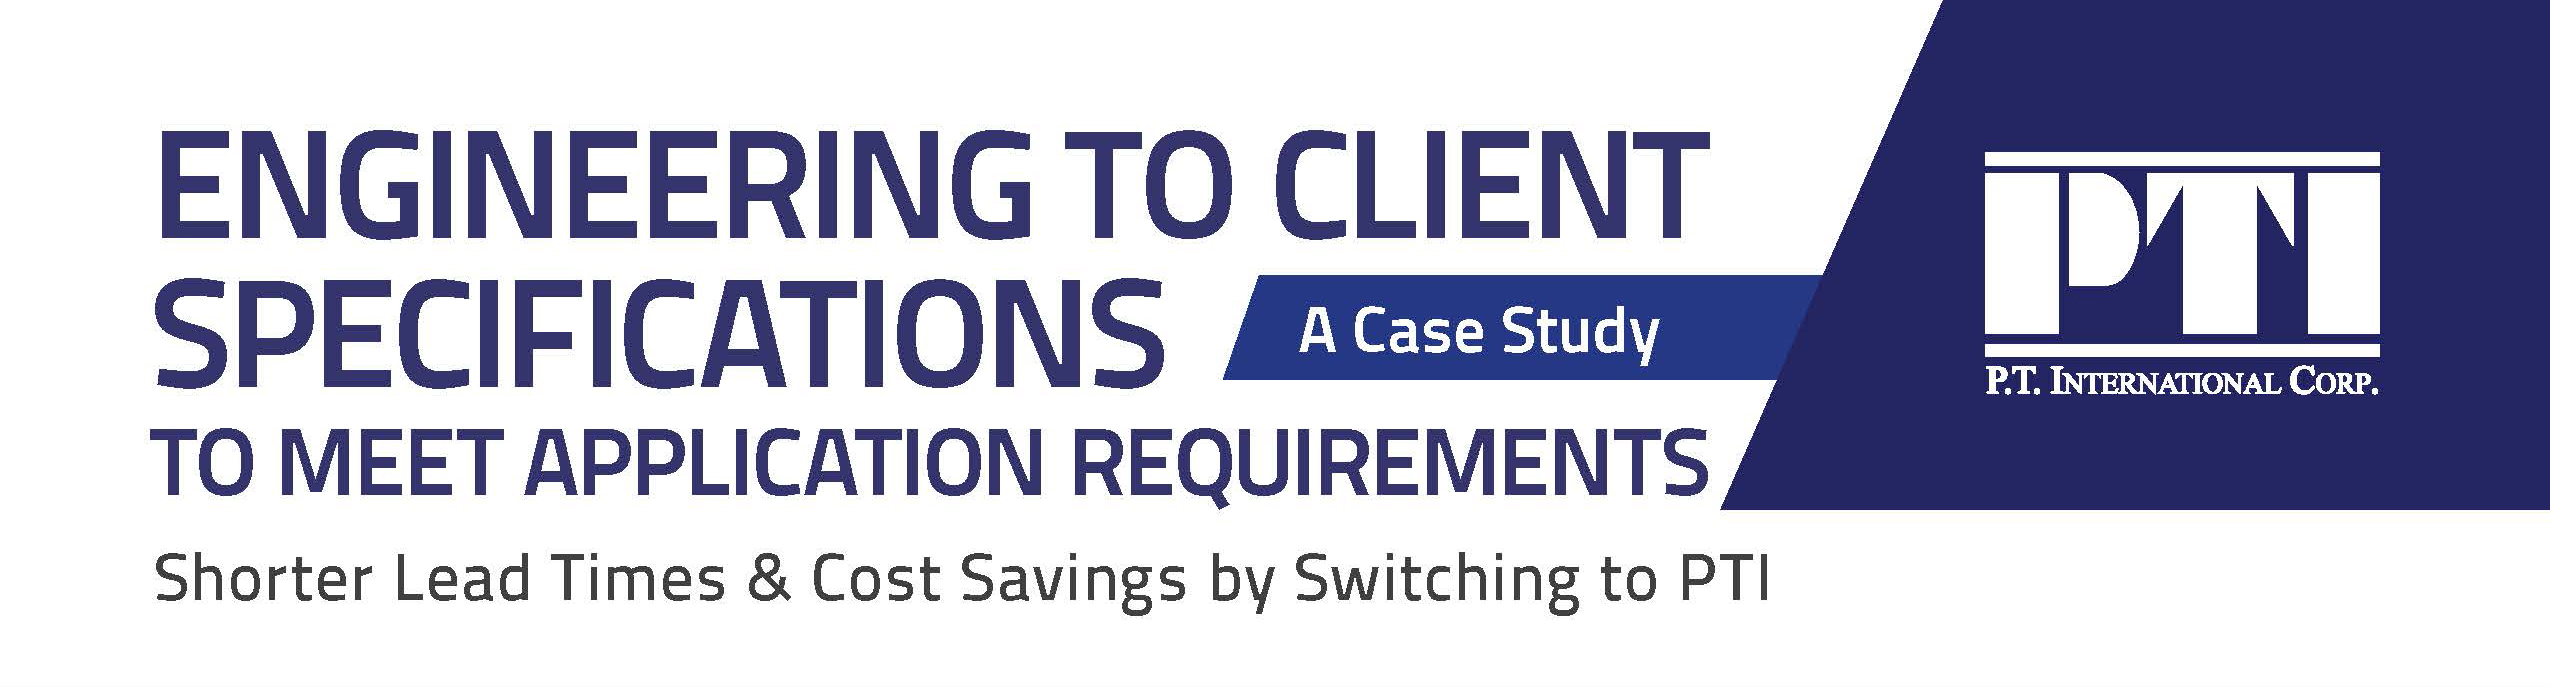 PTI-Case Study - Engineering to Client Specifications image for email